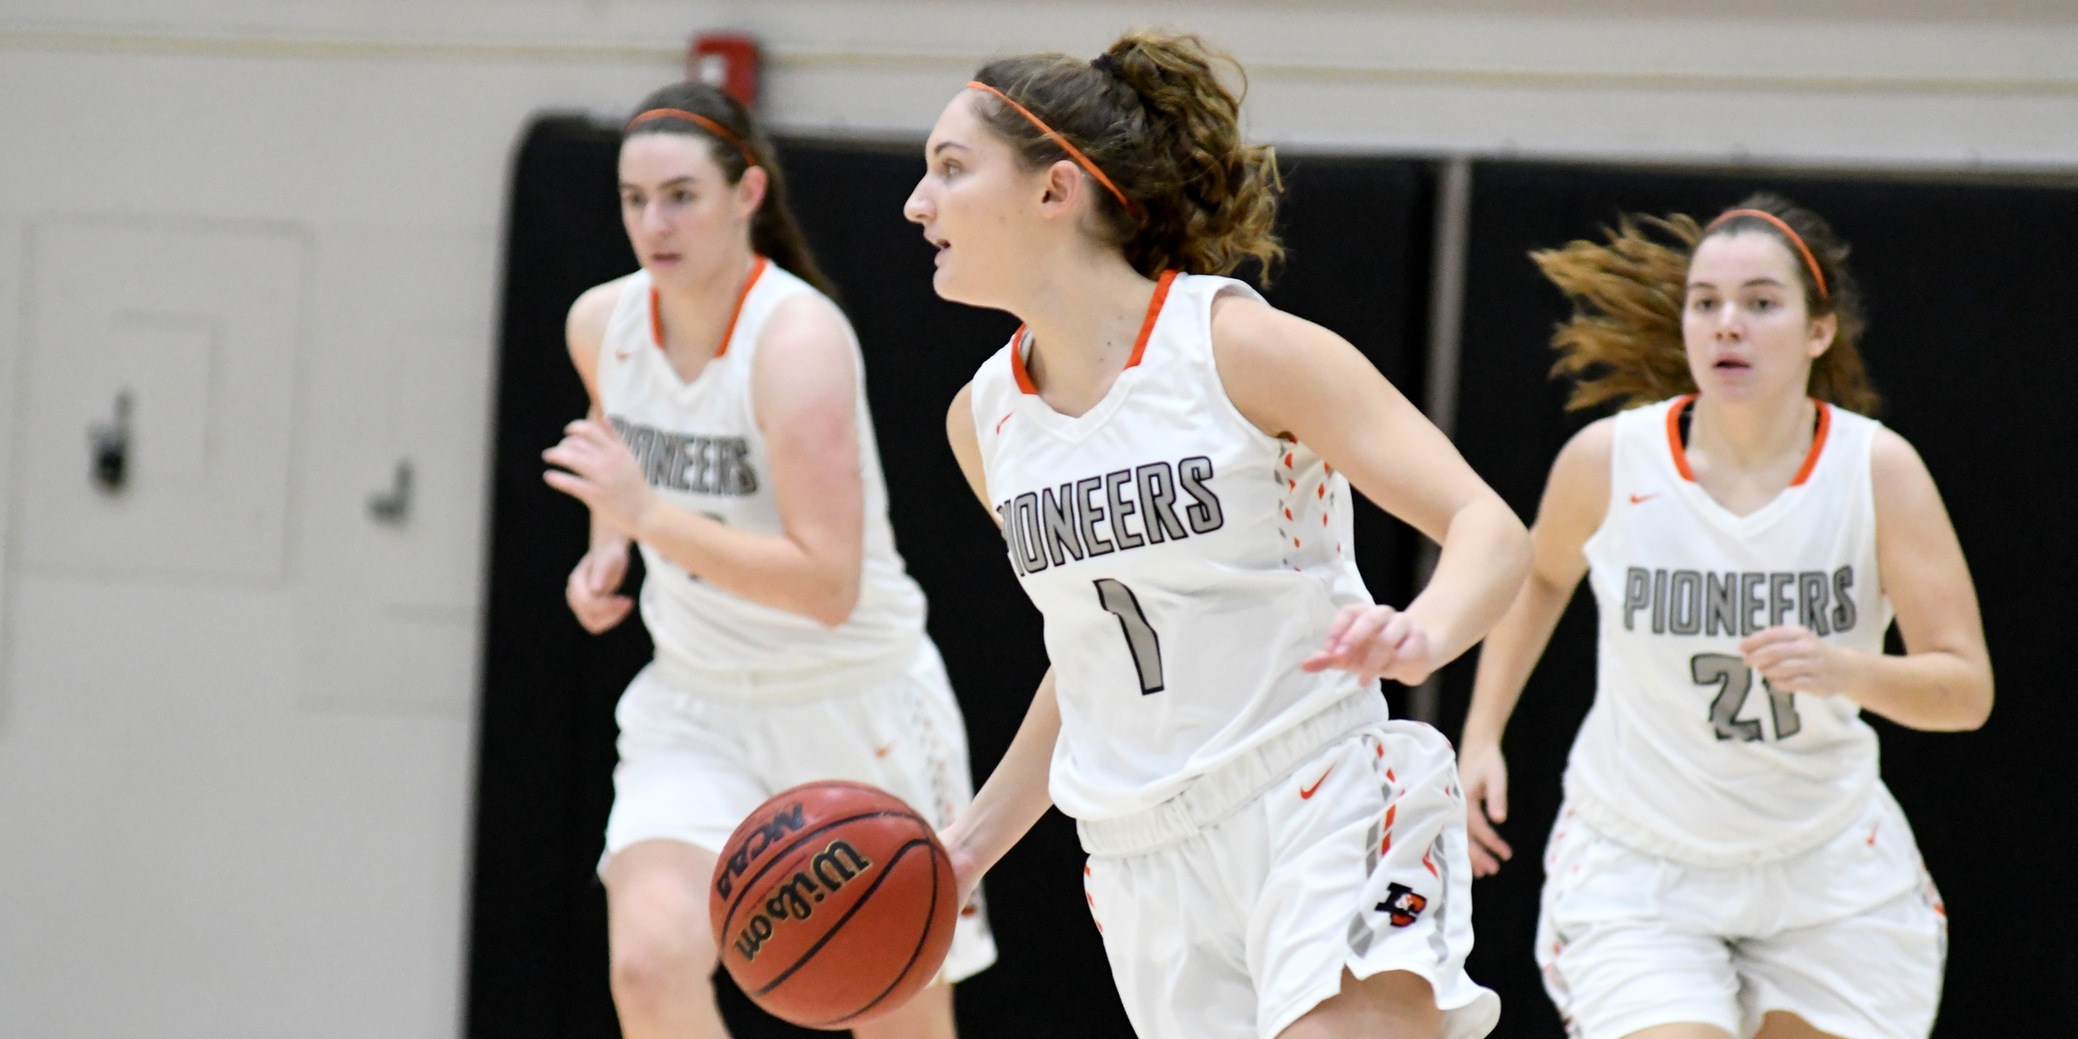 Pioneers winless in Eastern Oregon tournament